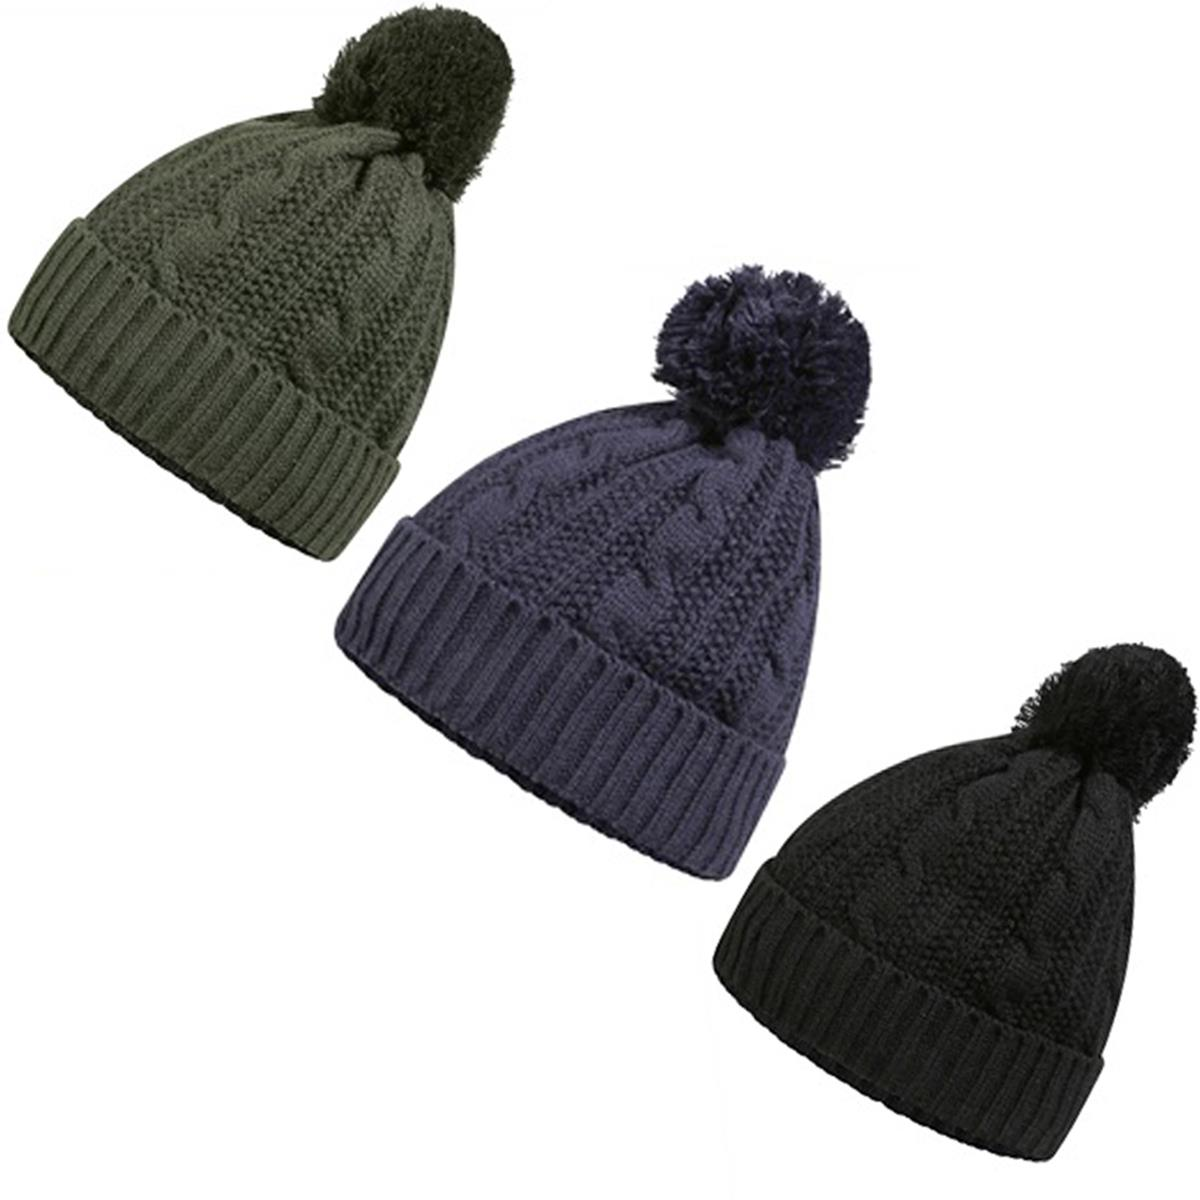 Details about ProClimate Waterproof Thinsulate Chunky Cable Knit Bobble Hat   57e374a24aa